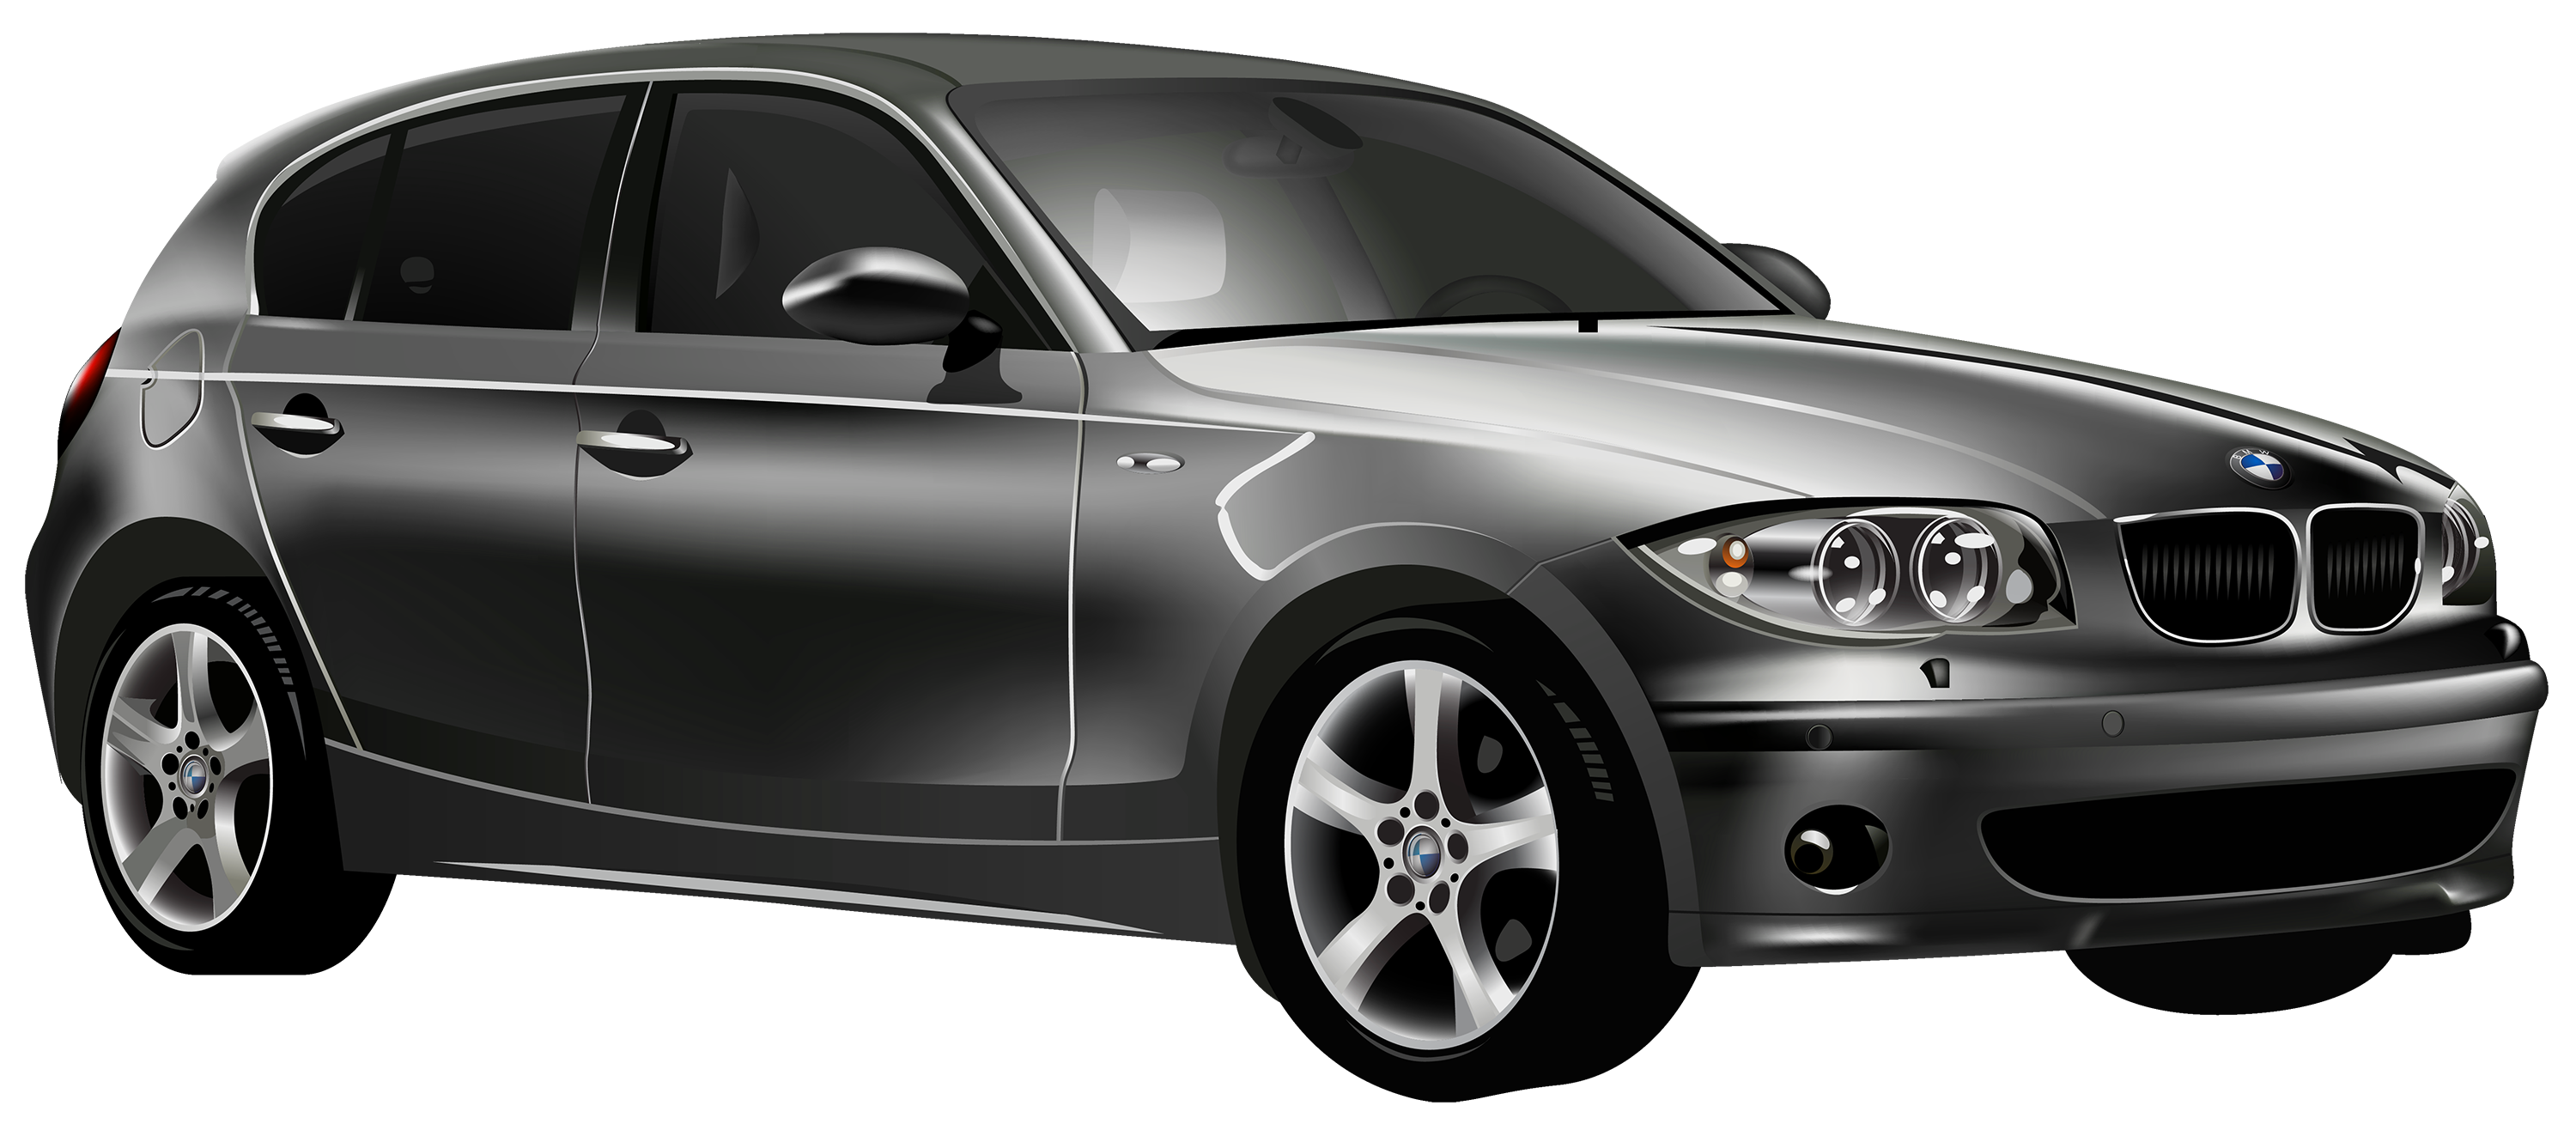 Bmw Cars Png image #39075